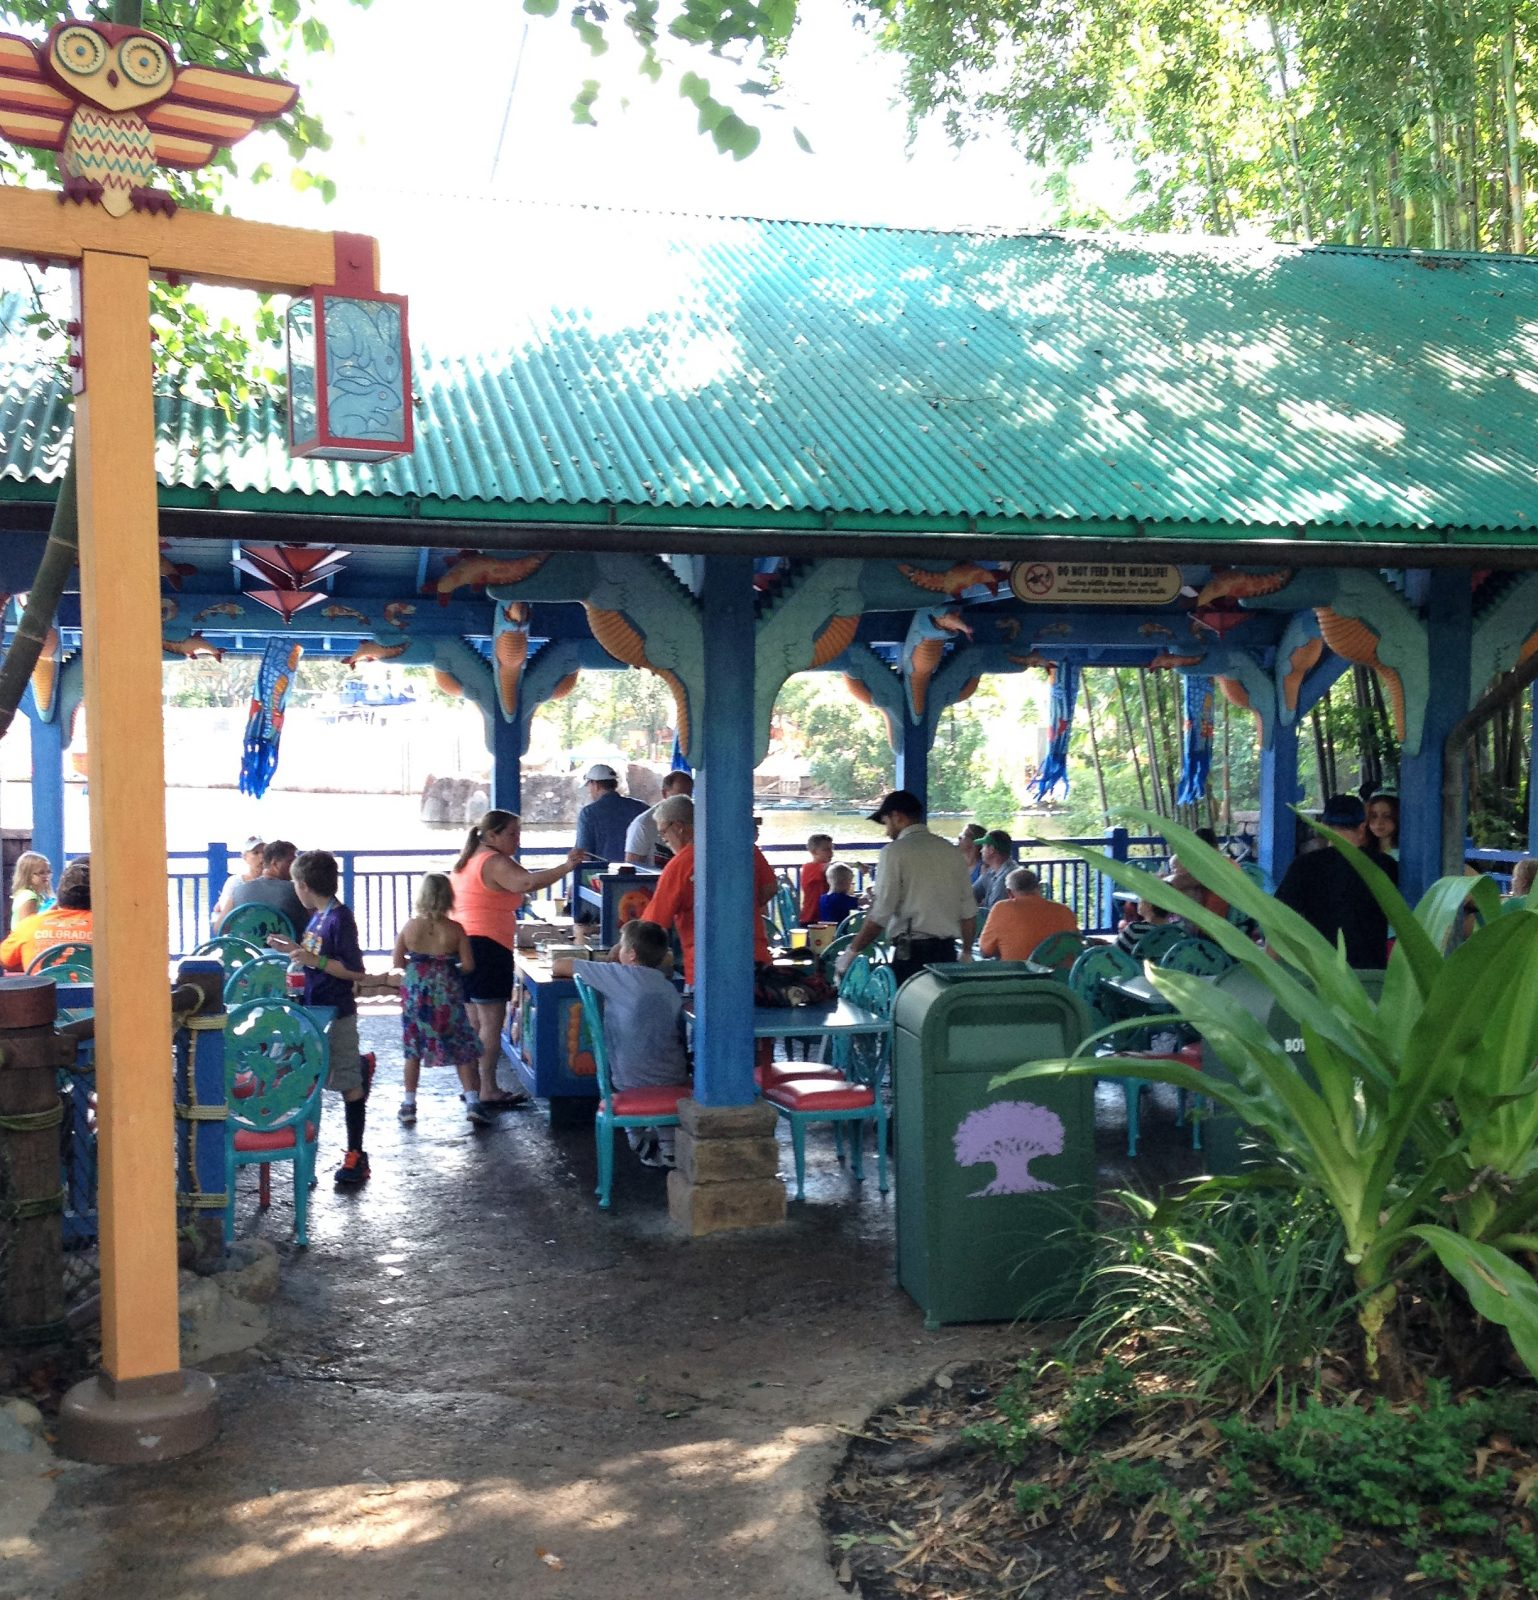 flame tree barbecue seating area - best animal kingdom quick service